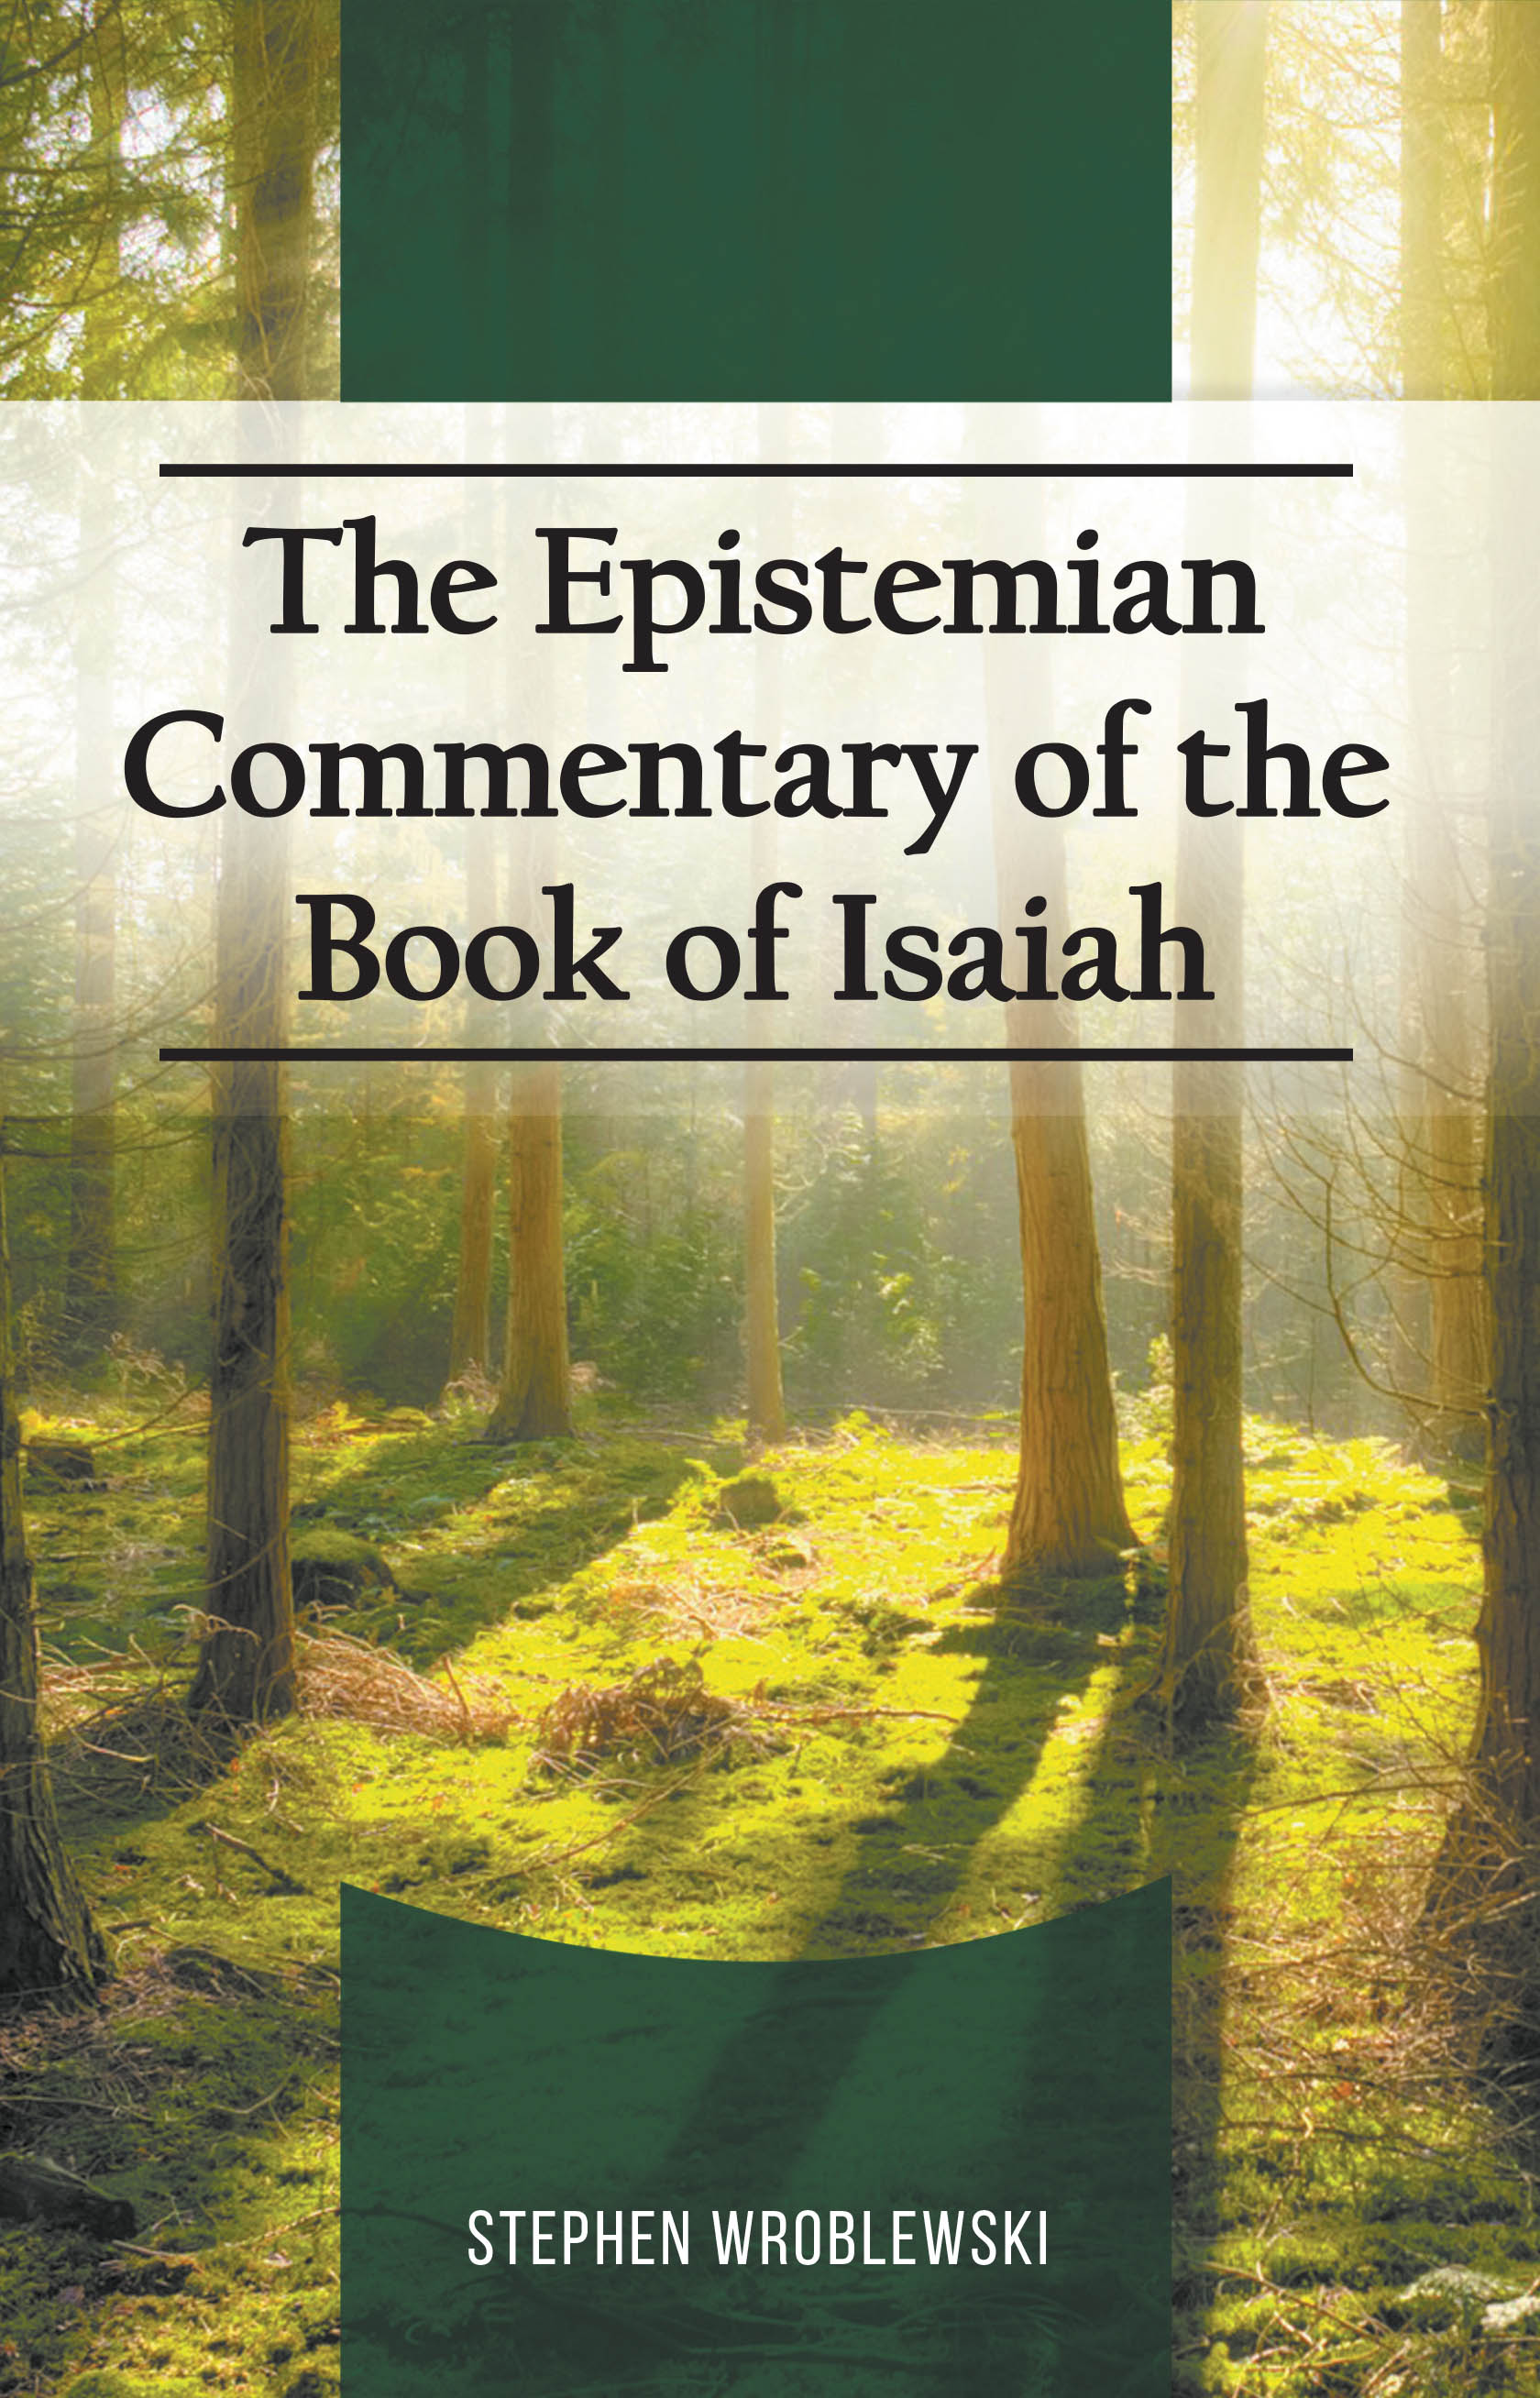 The Epistemian Commentary of the Book of Isaiah - LitFire